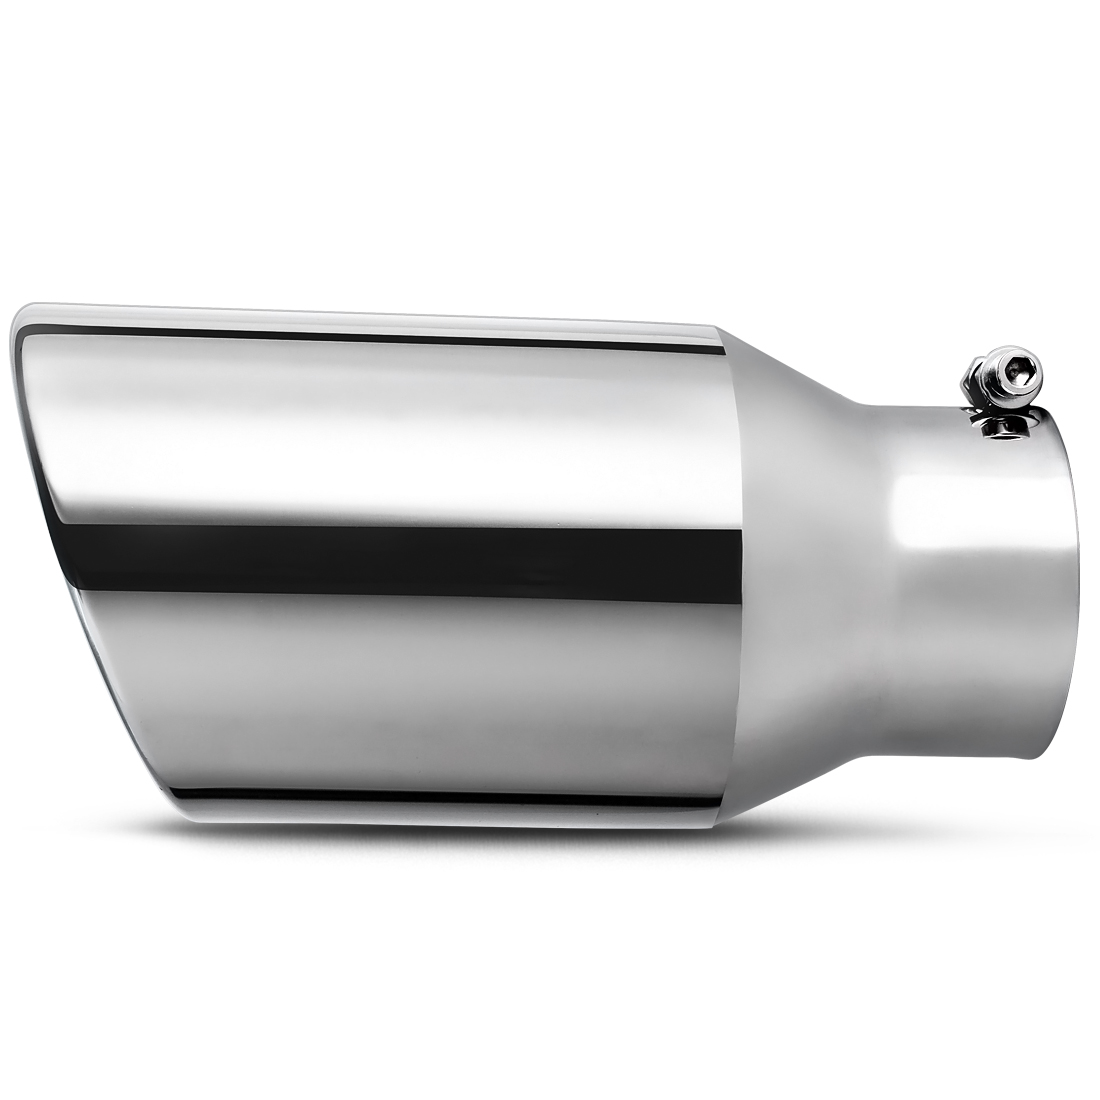 exhaust tip 4 inch inlet x 6 inch outlet x 12 inch long bolt on polished chrome stainless steel slant cut tailpipe